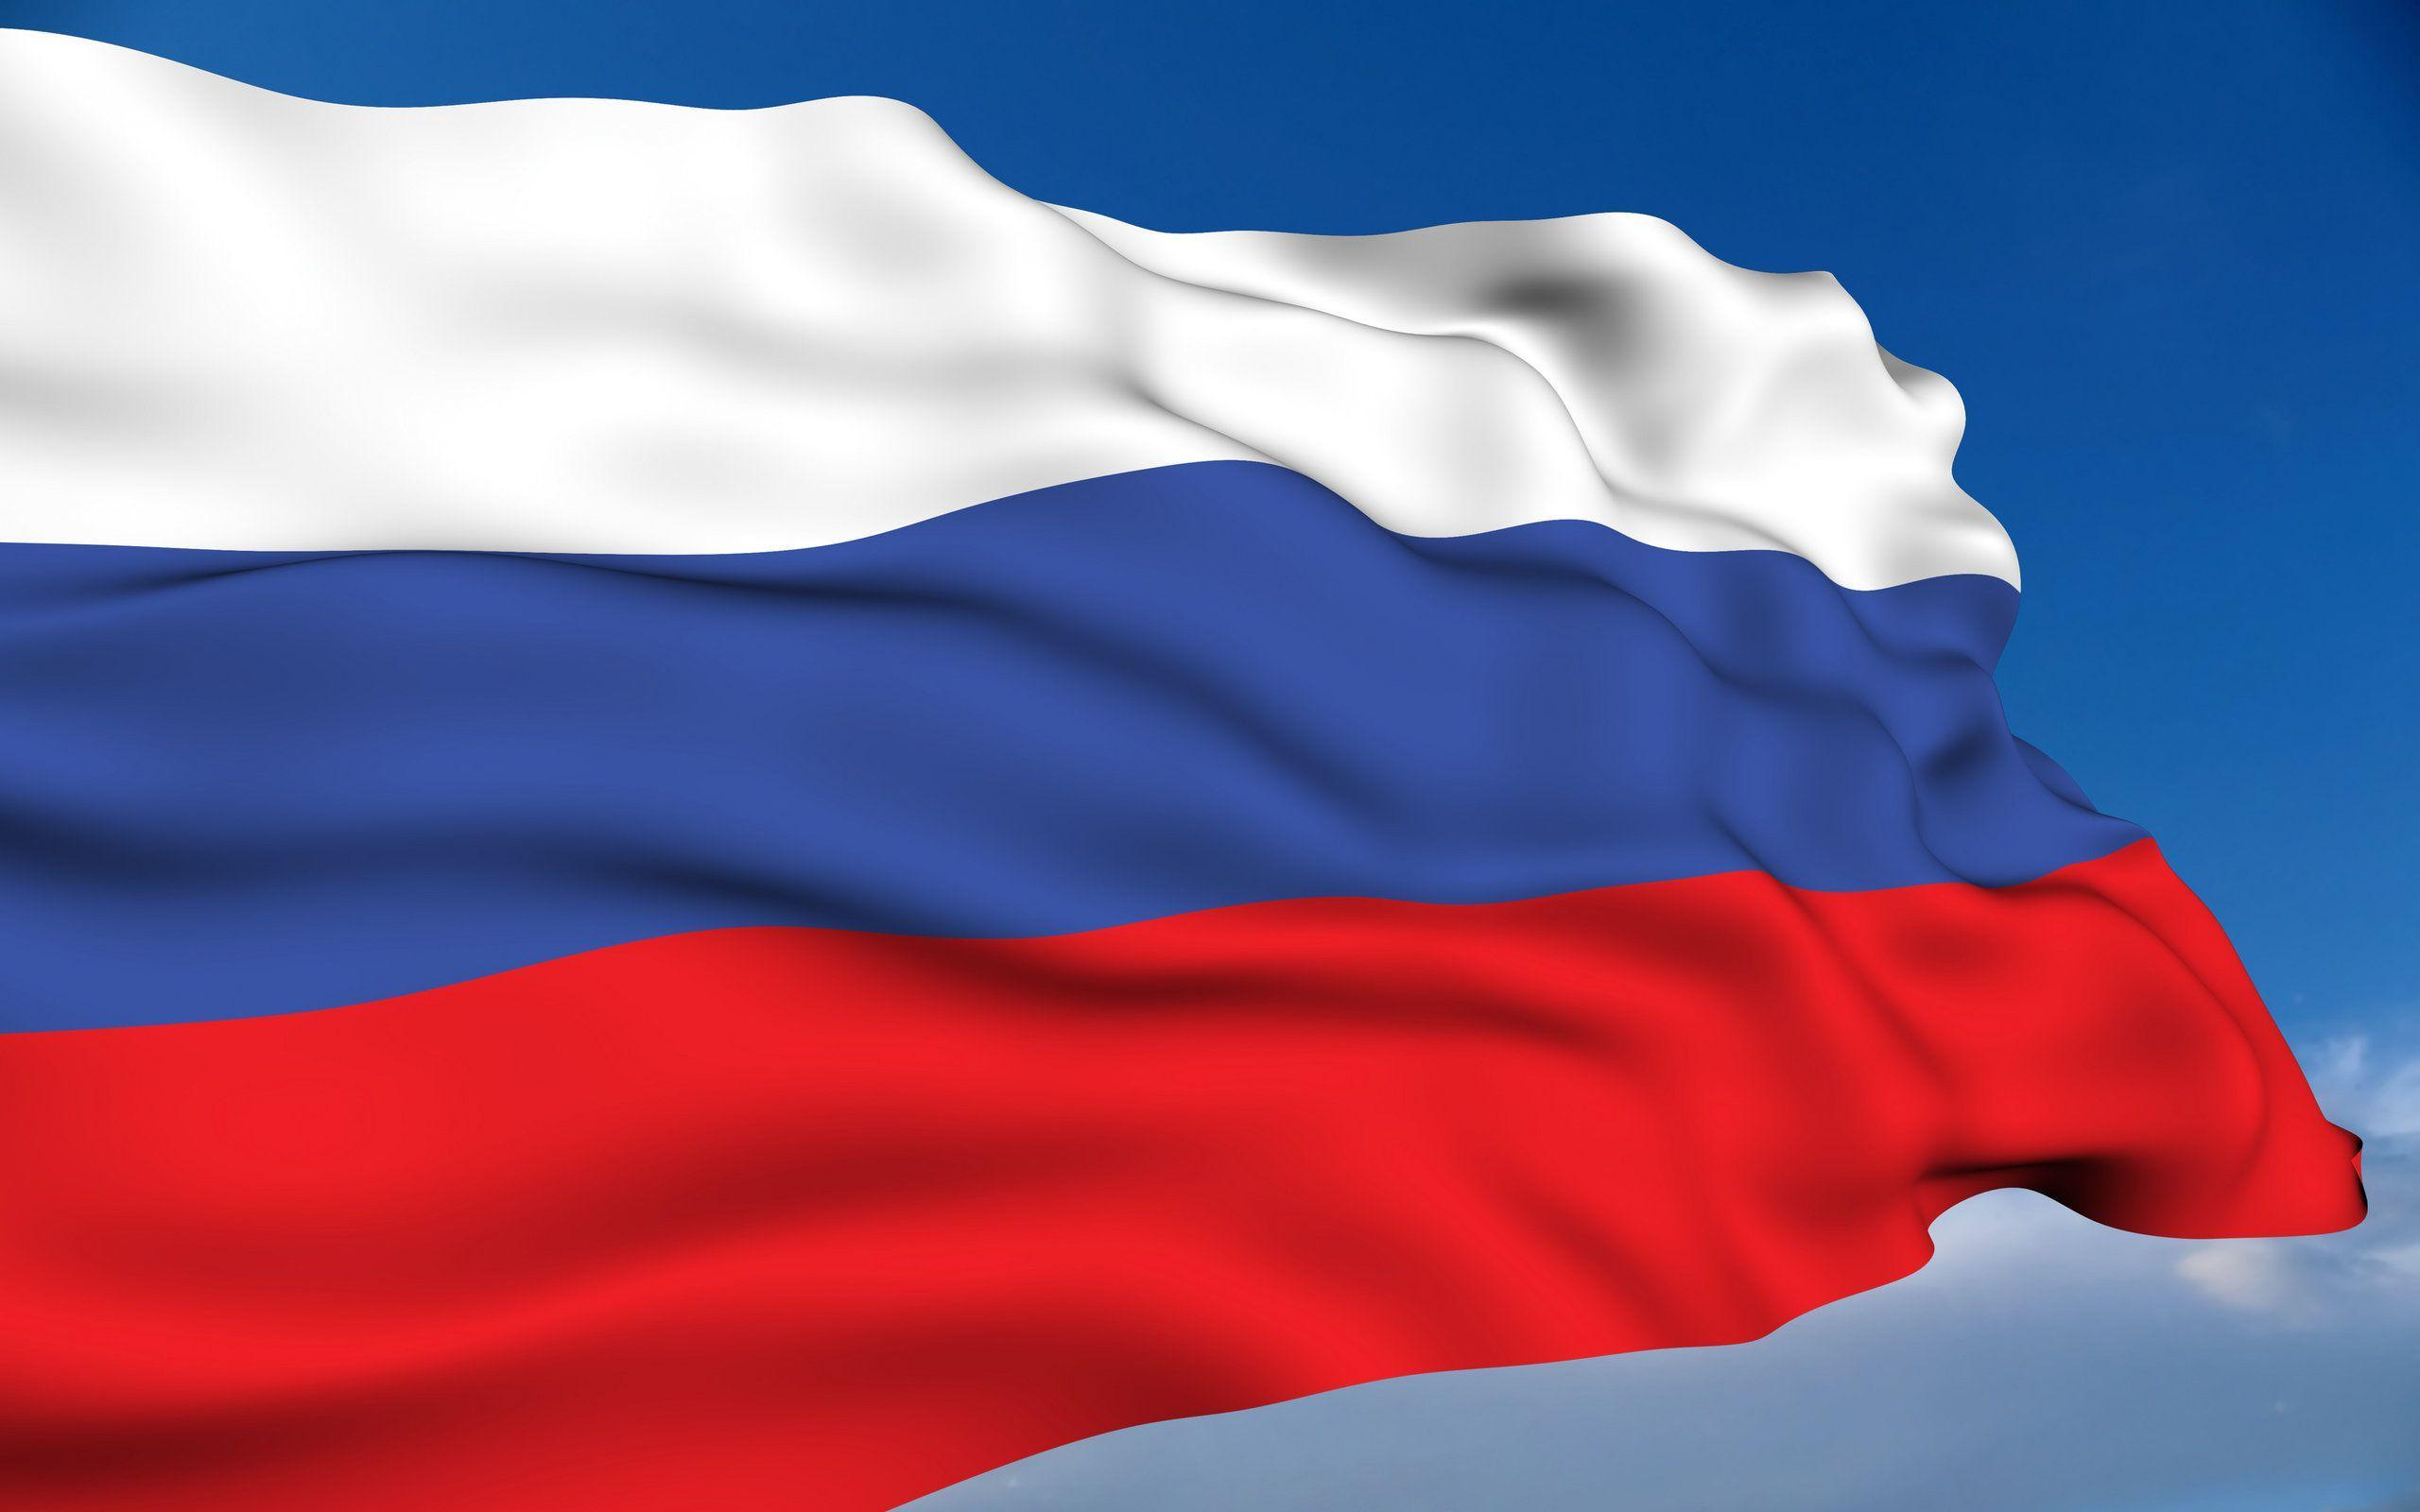 Russian flag wallpapers and images - wallpapers, pictures, photos